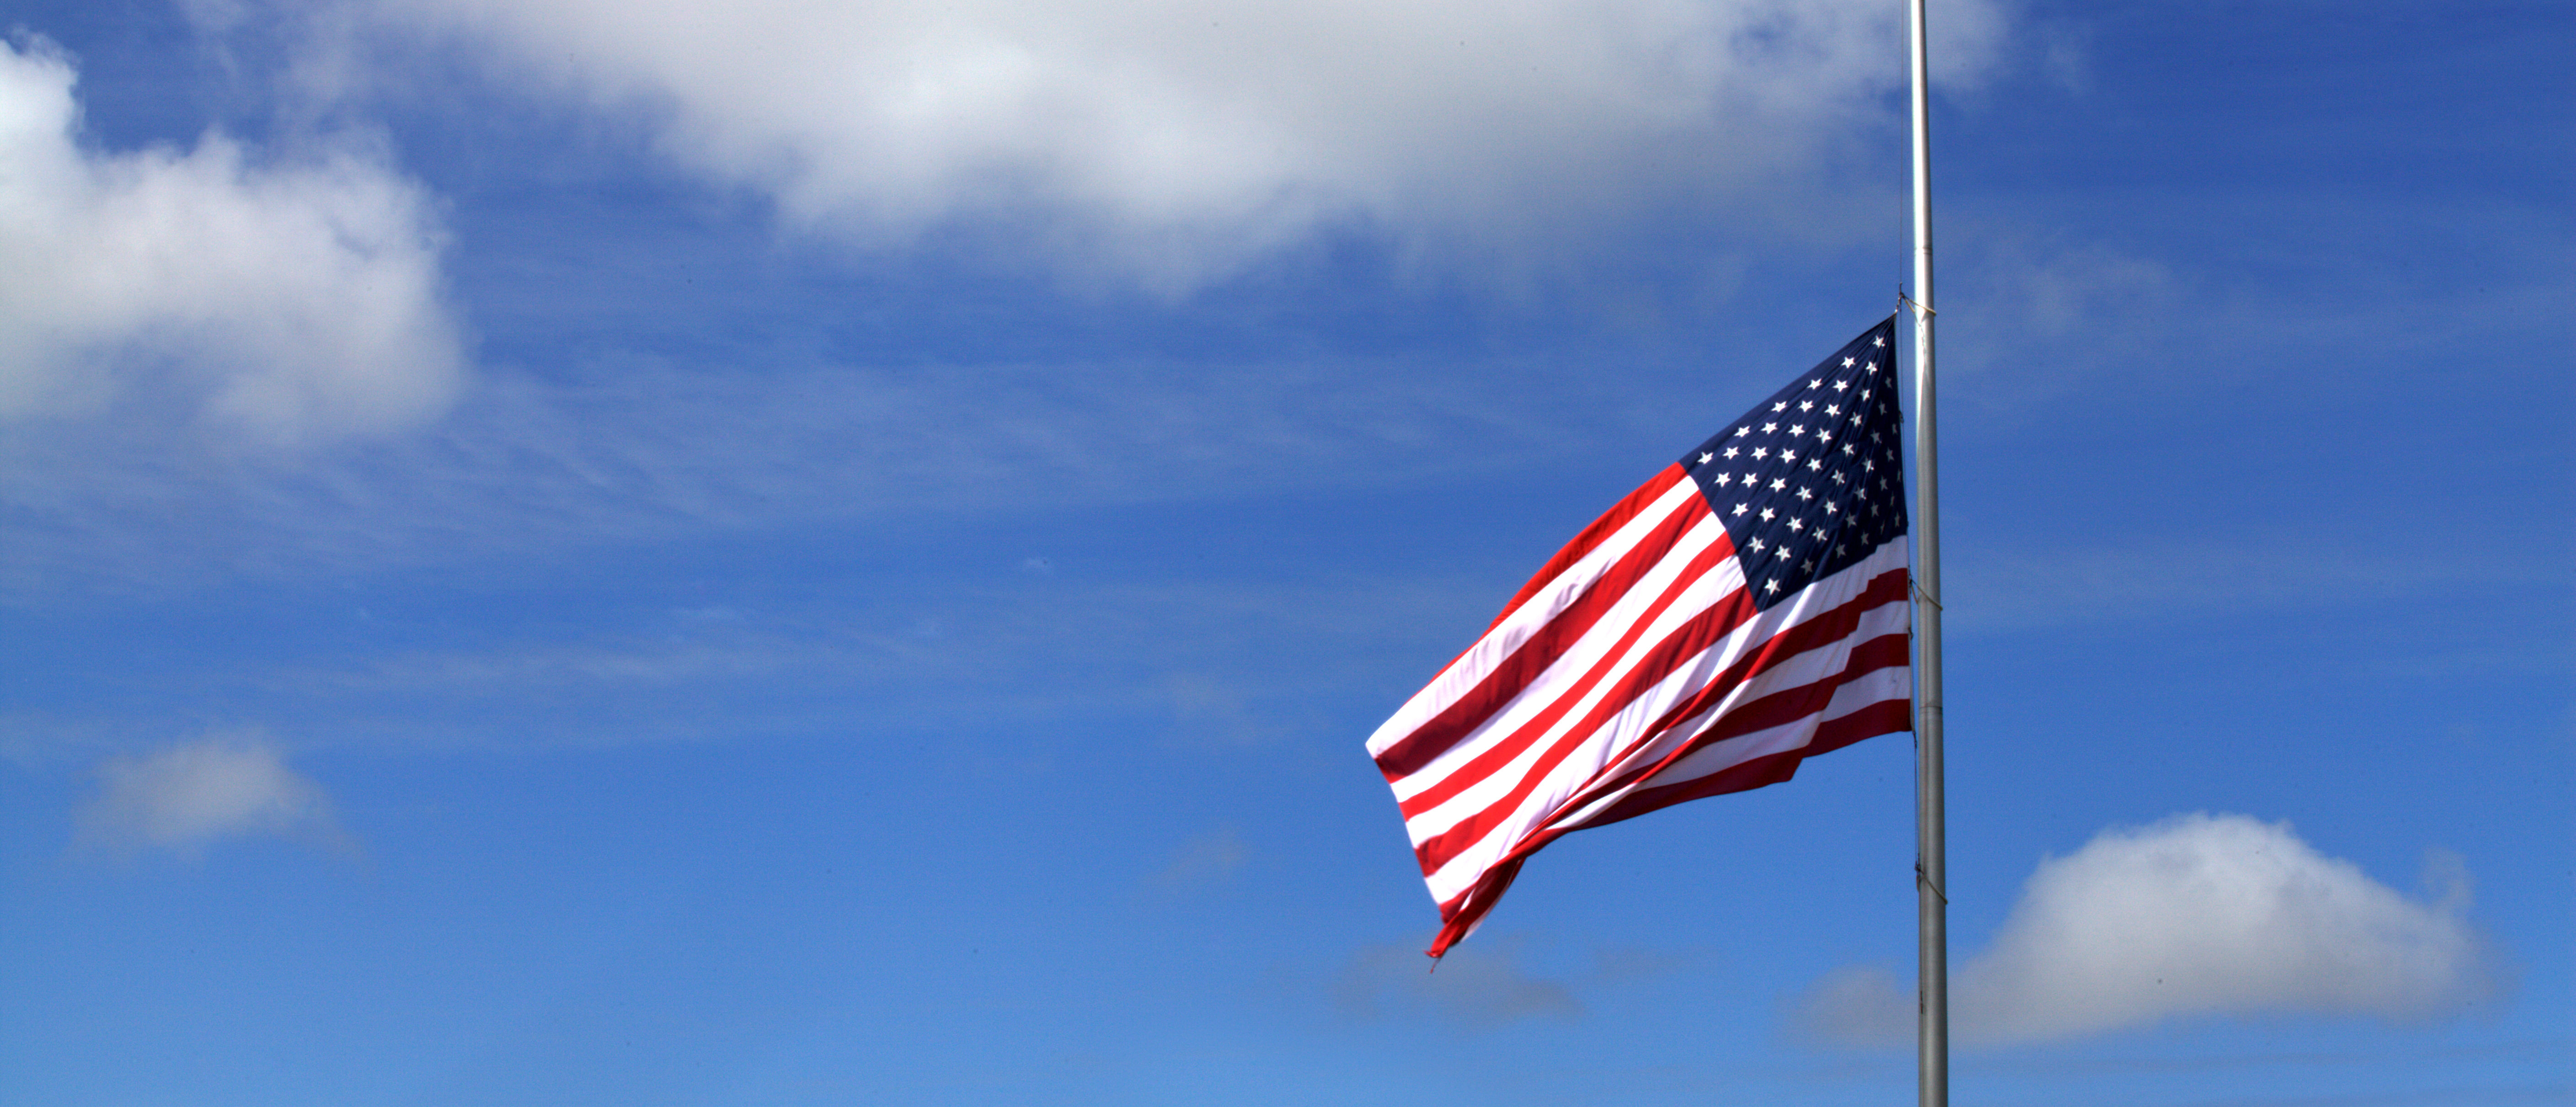 The American flag at half mast. Shutterstock)